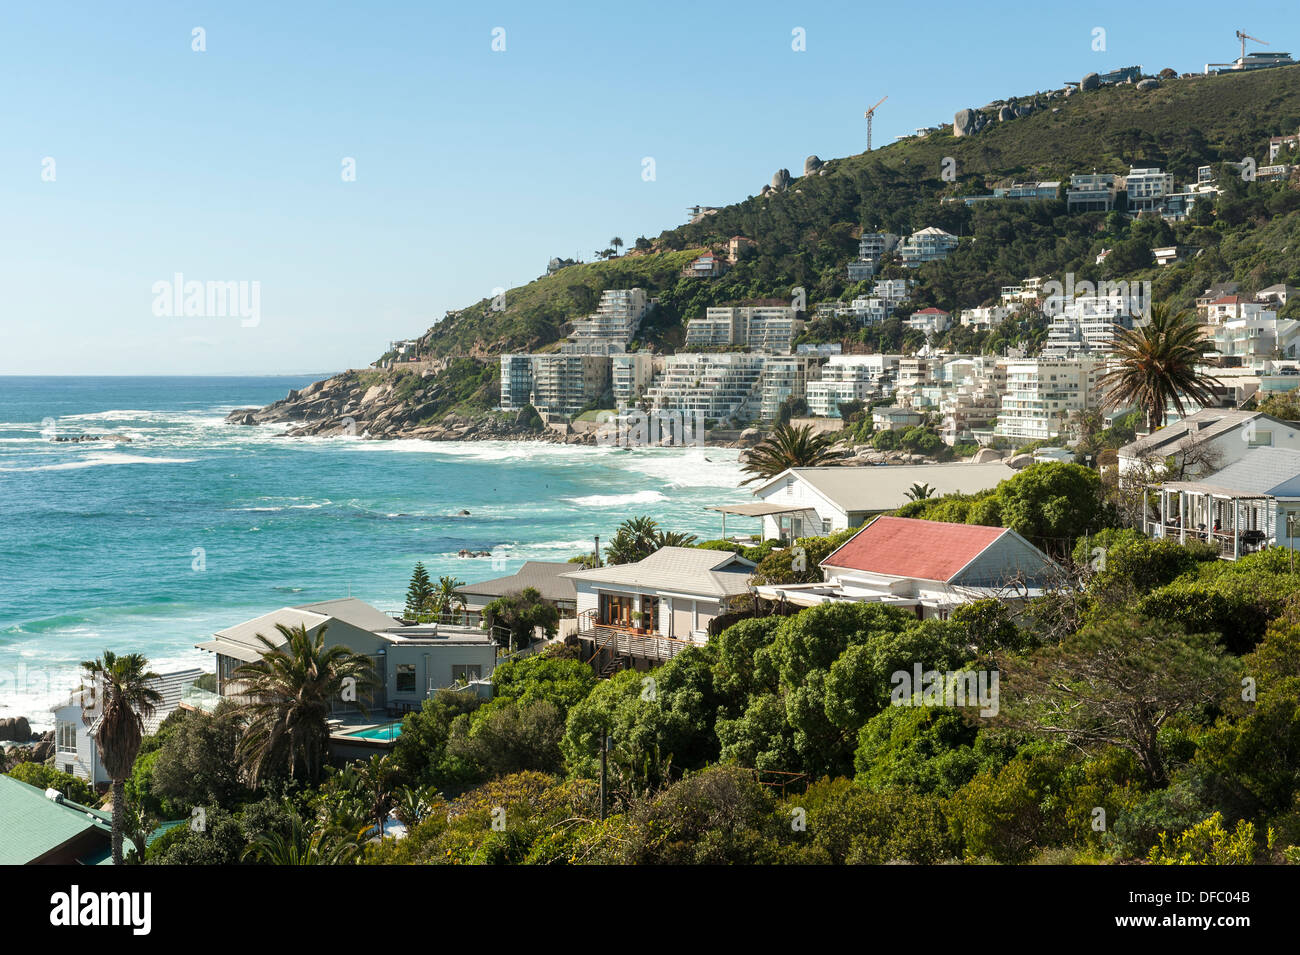 Clifton is an exclusive residential area in Cape Town, South Africa - Stock Image